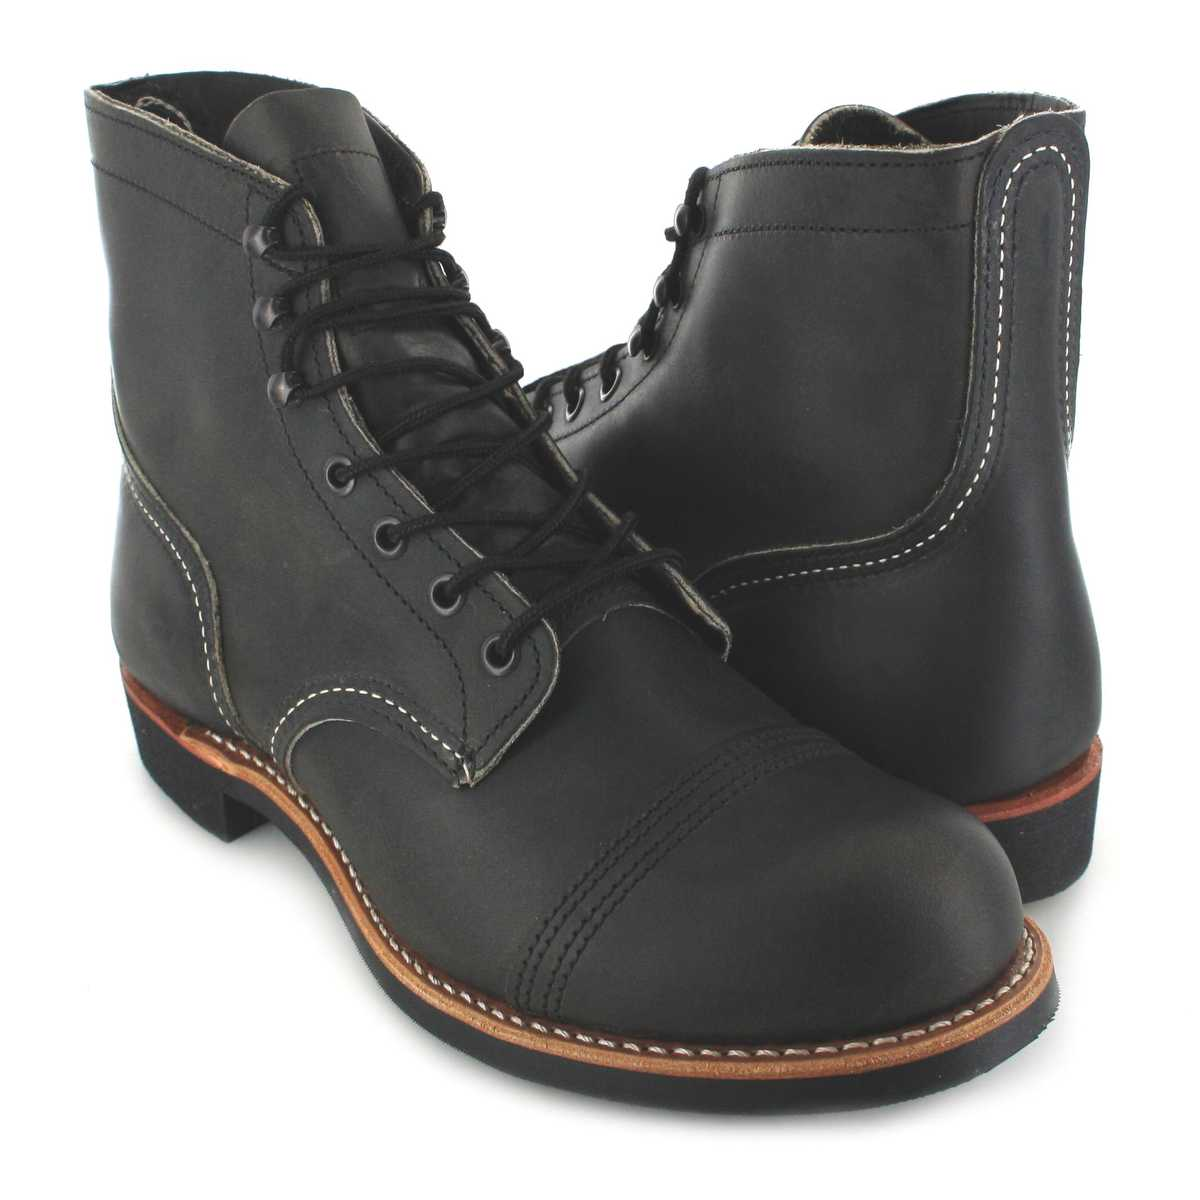 161ec7dbe97 Red Wing Shoes IRON RANGER 8086 Charcoal lace-up boots - gray